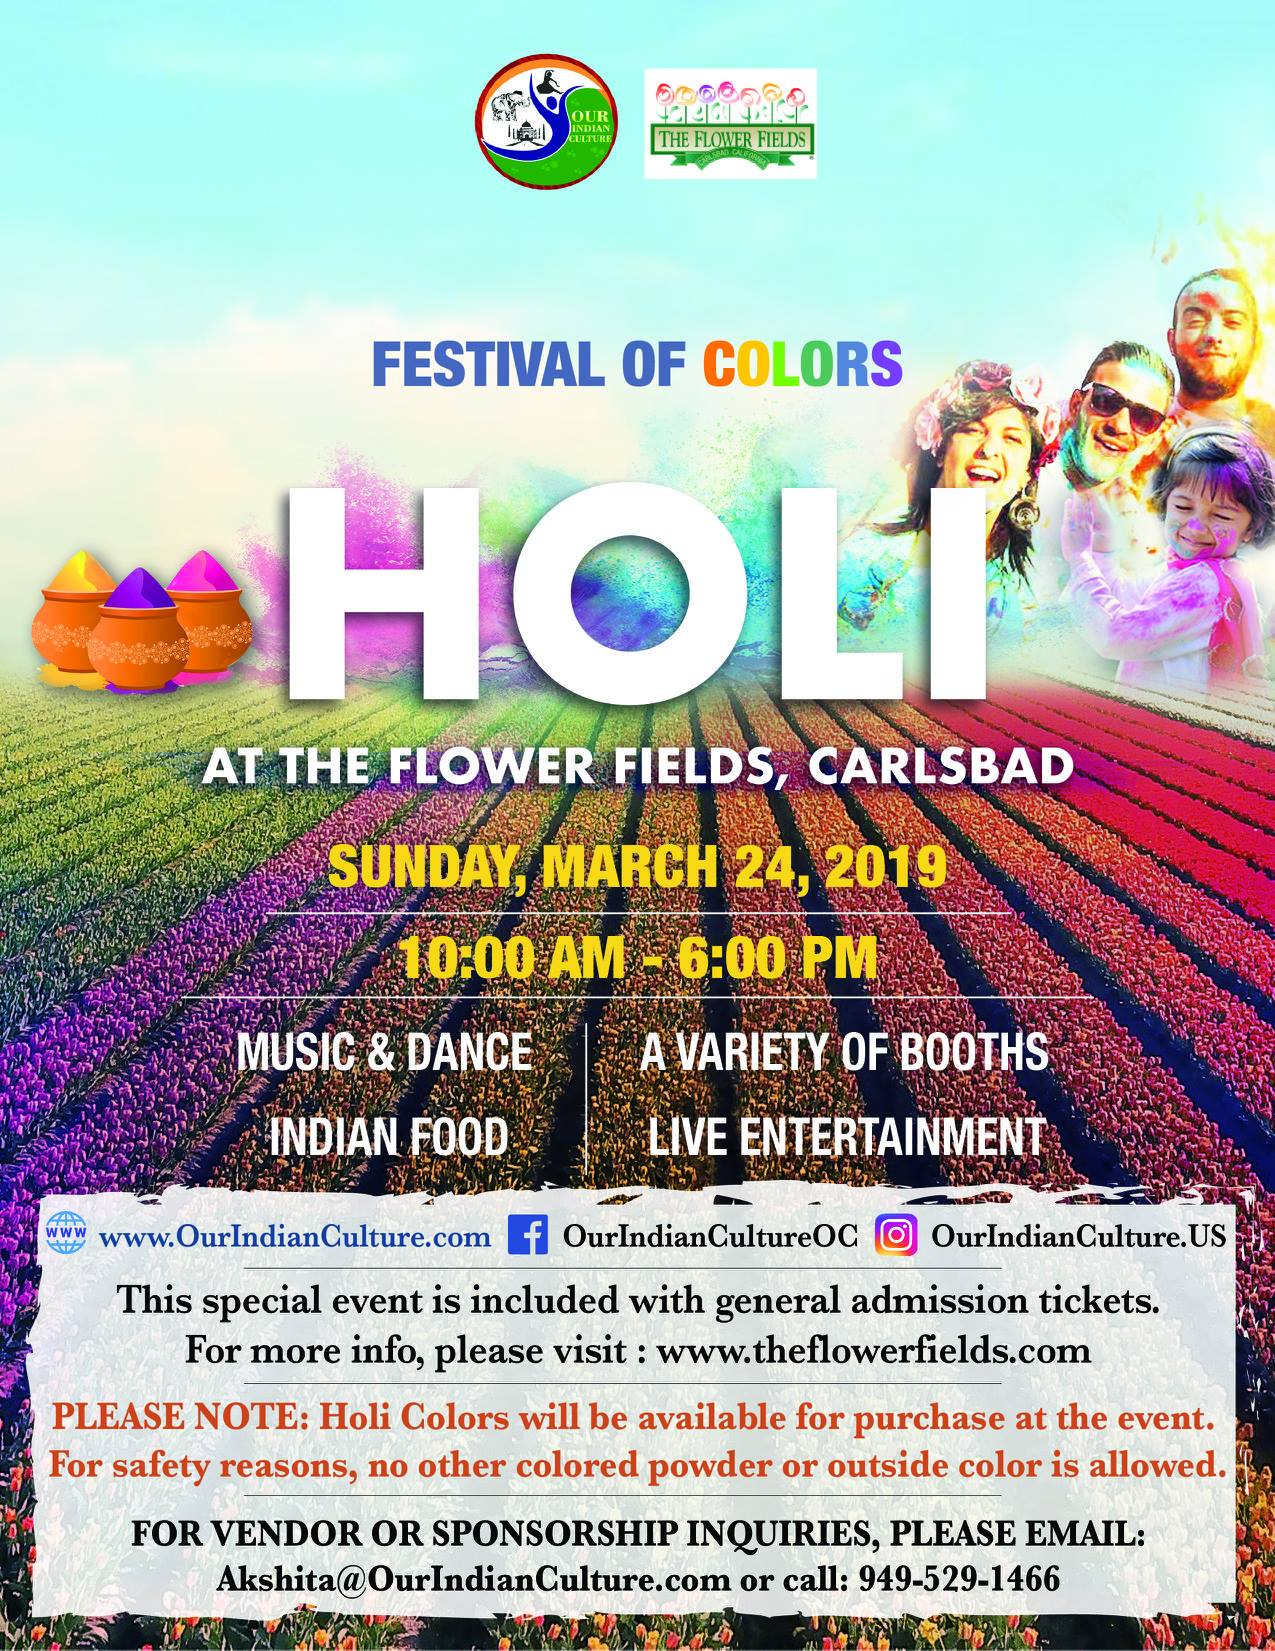 Festival of Colors - HOLI - March 24 2019 - Flower Fields Carlsbad